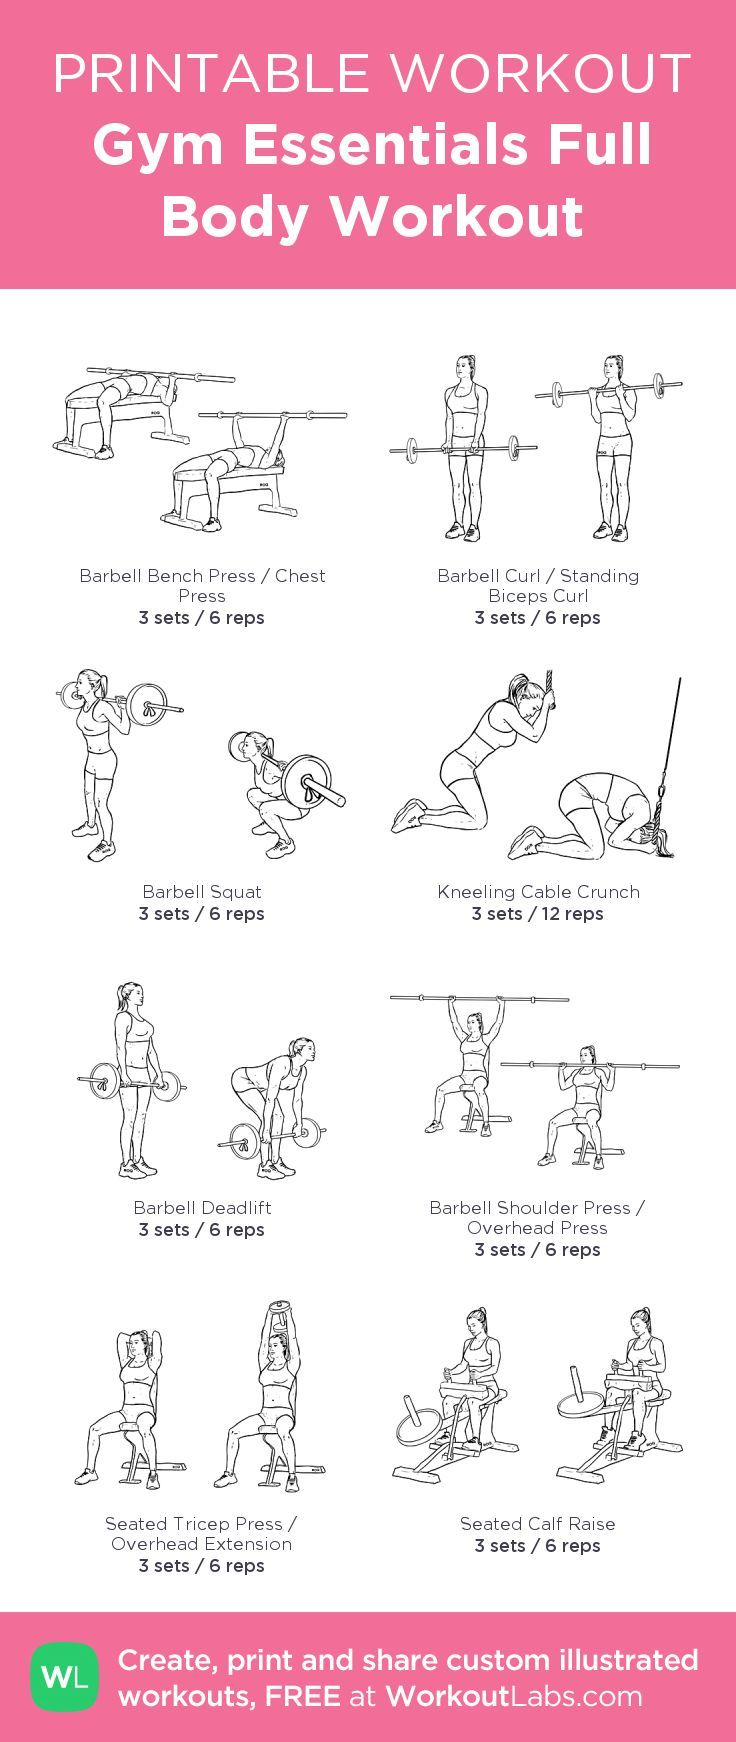 Gym Essentials Full Body Workout: my visual workout created at WorkoutLabs.com …